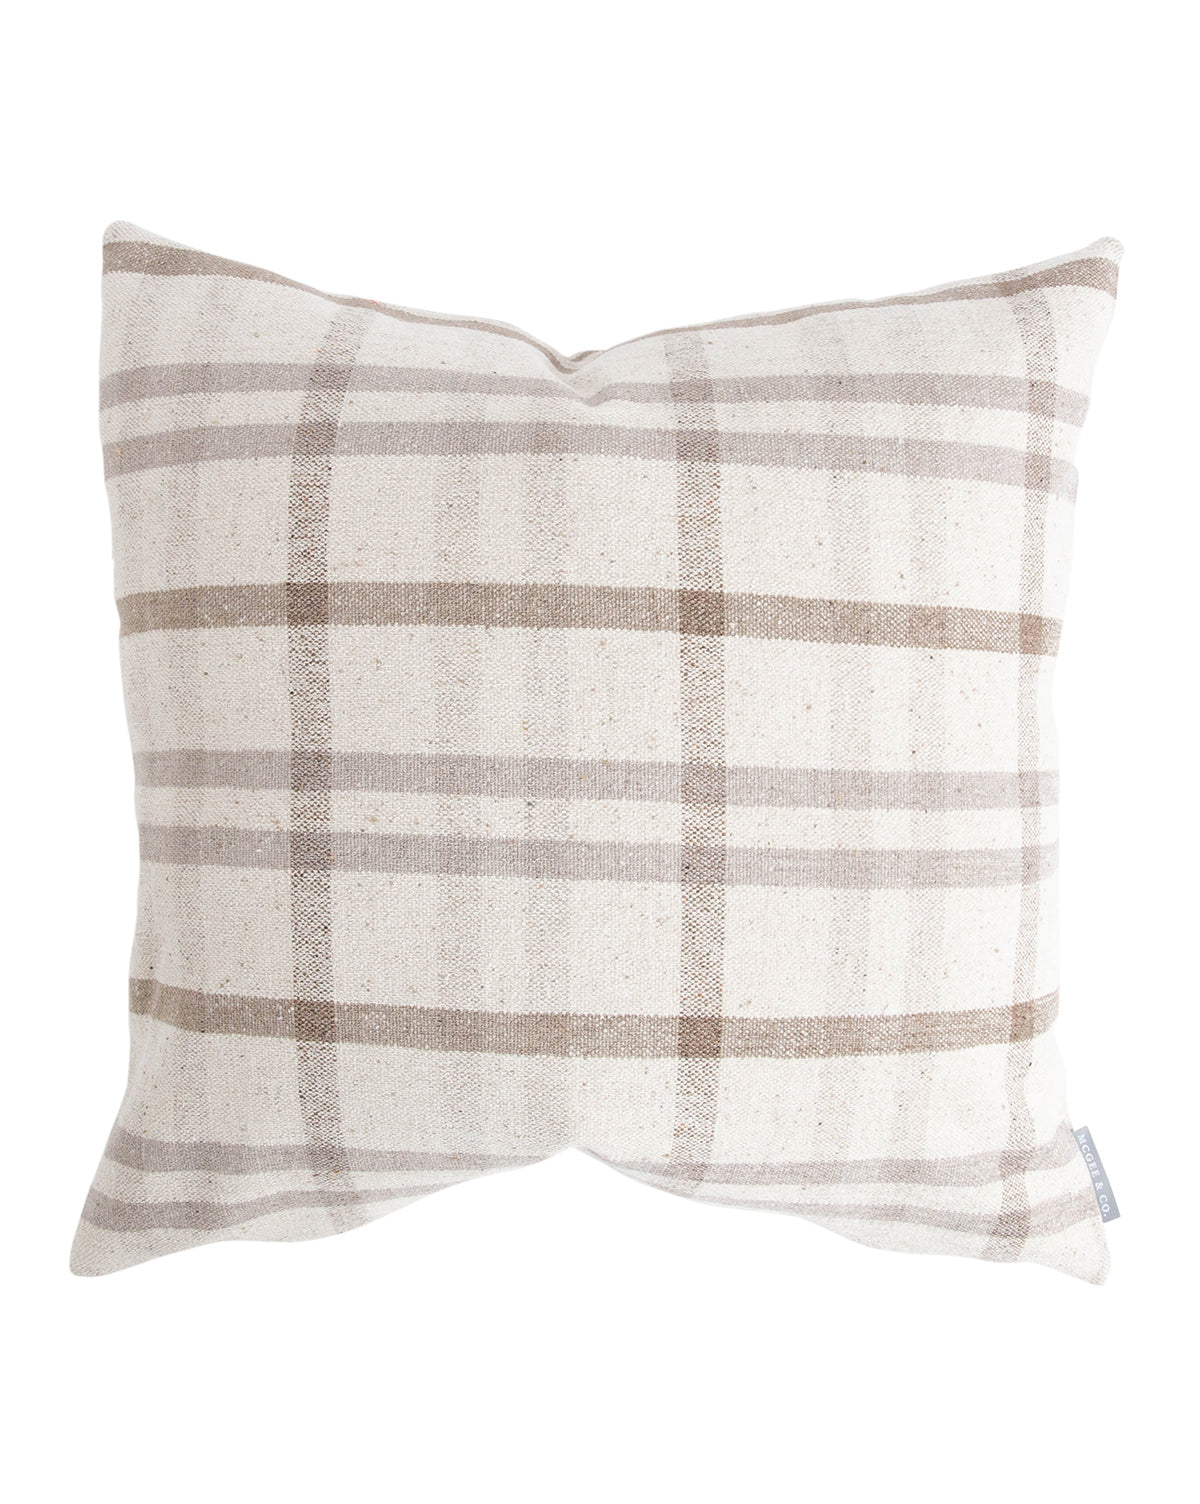 Darcy Pillow Cover